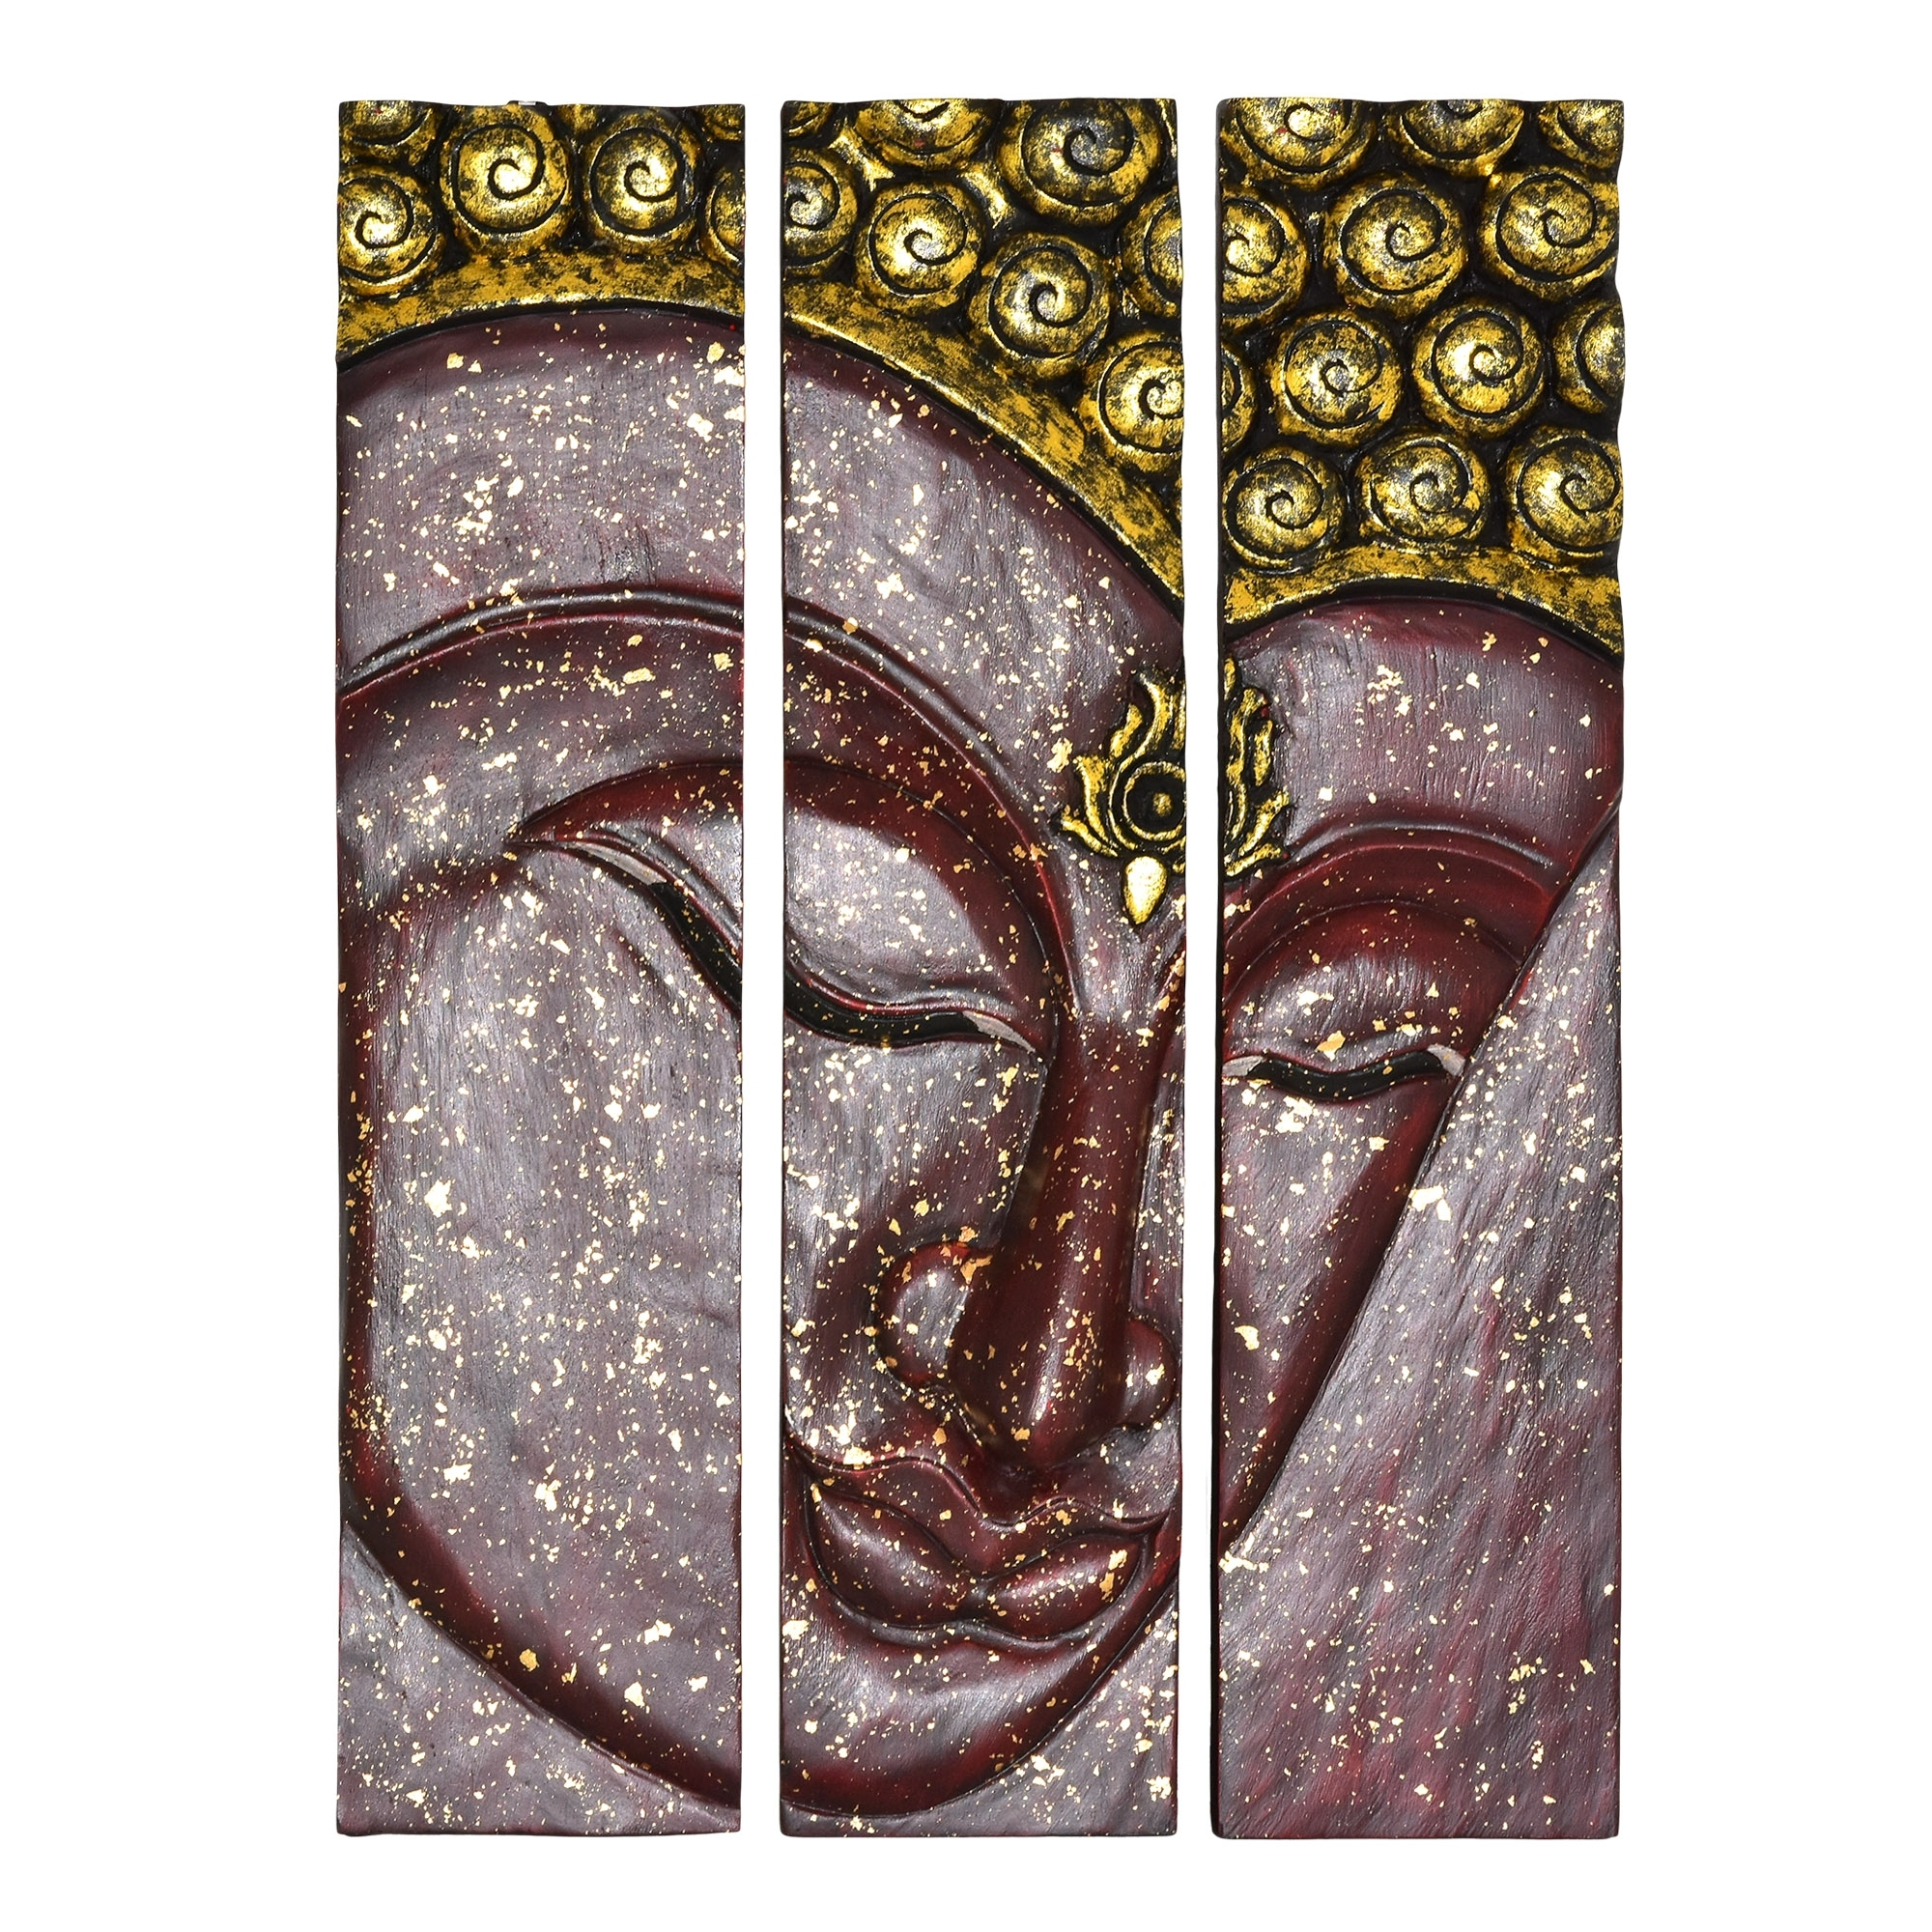 Golden Red Buddha Face Three Panel Hand Carved Wood Wall Art 20X30 Intended For Most Recent Carved Wood Wall Art (Gallery 15 of 15)